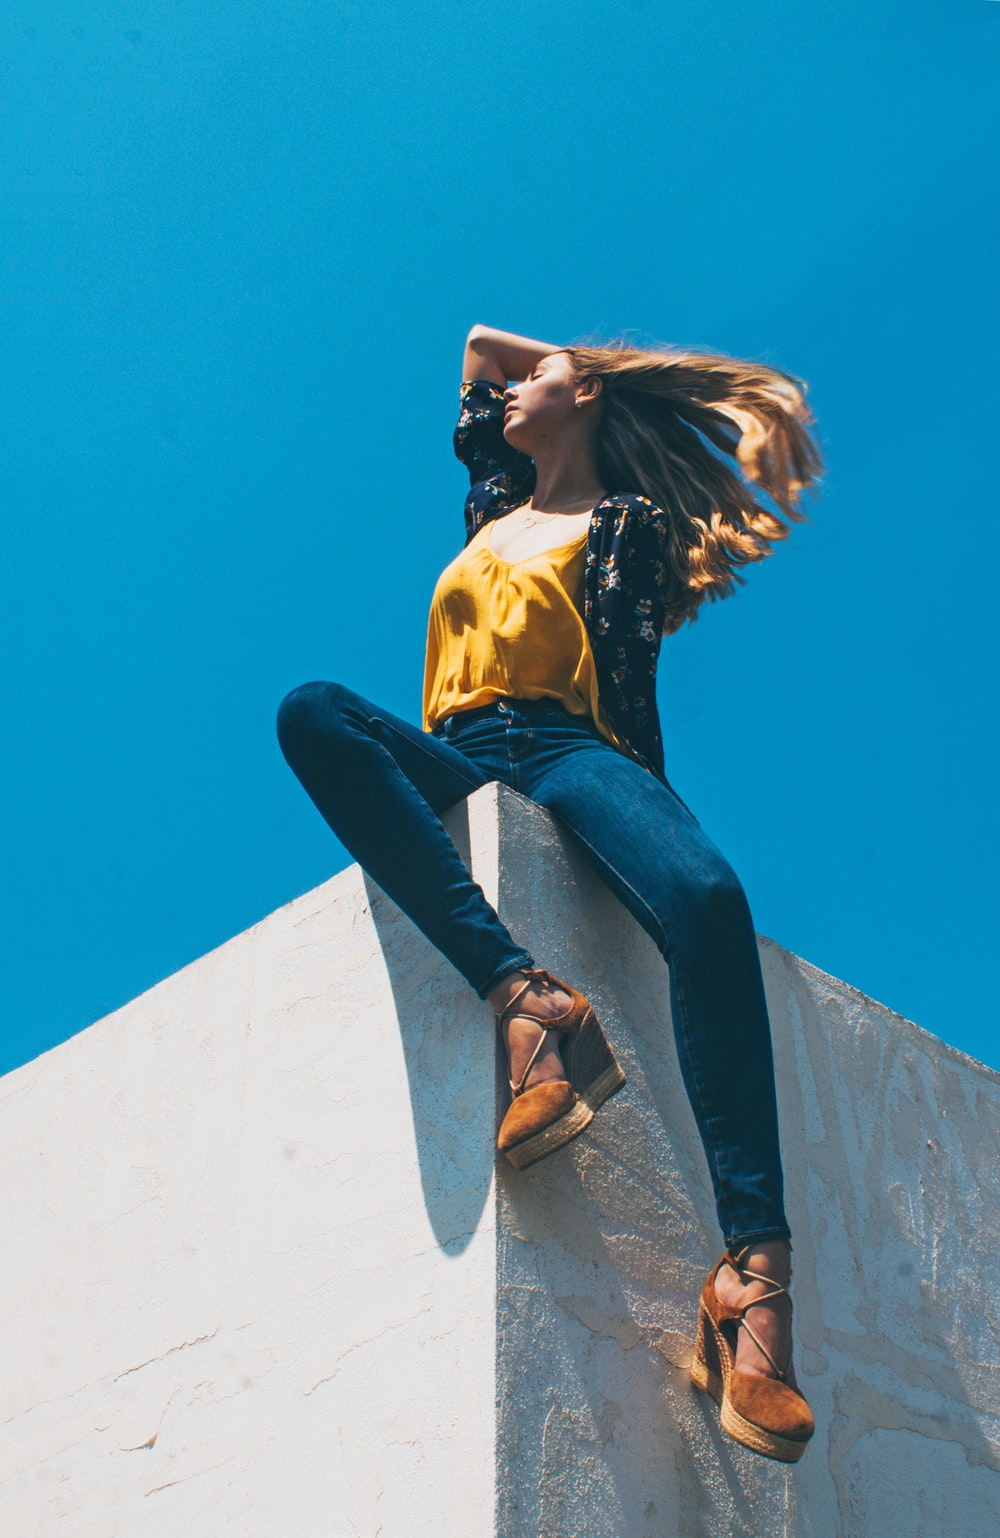 woman in yellow shirt and blue denim jeans sitting on edge at daytime